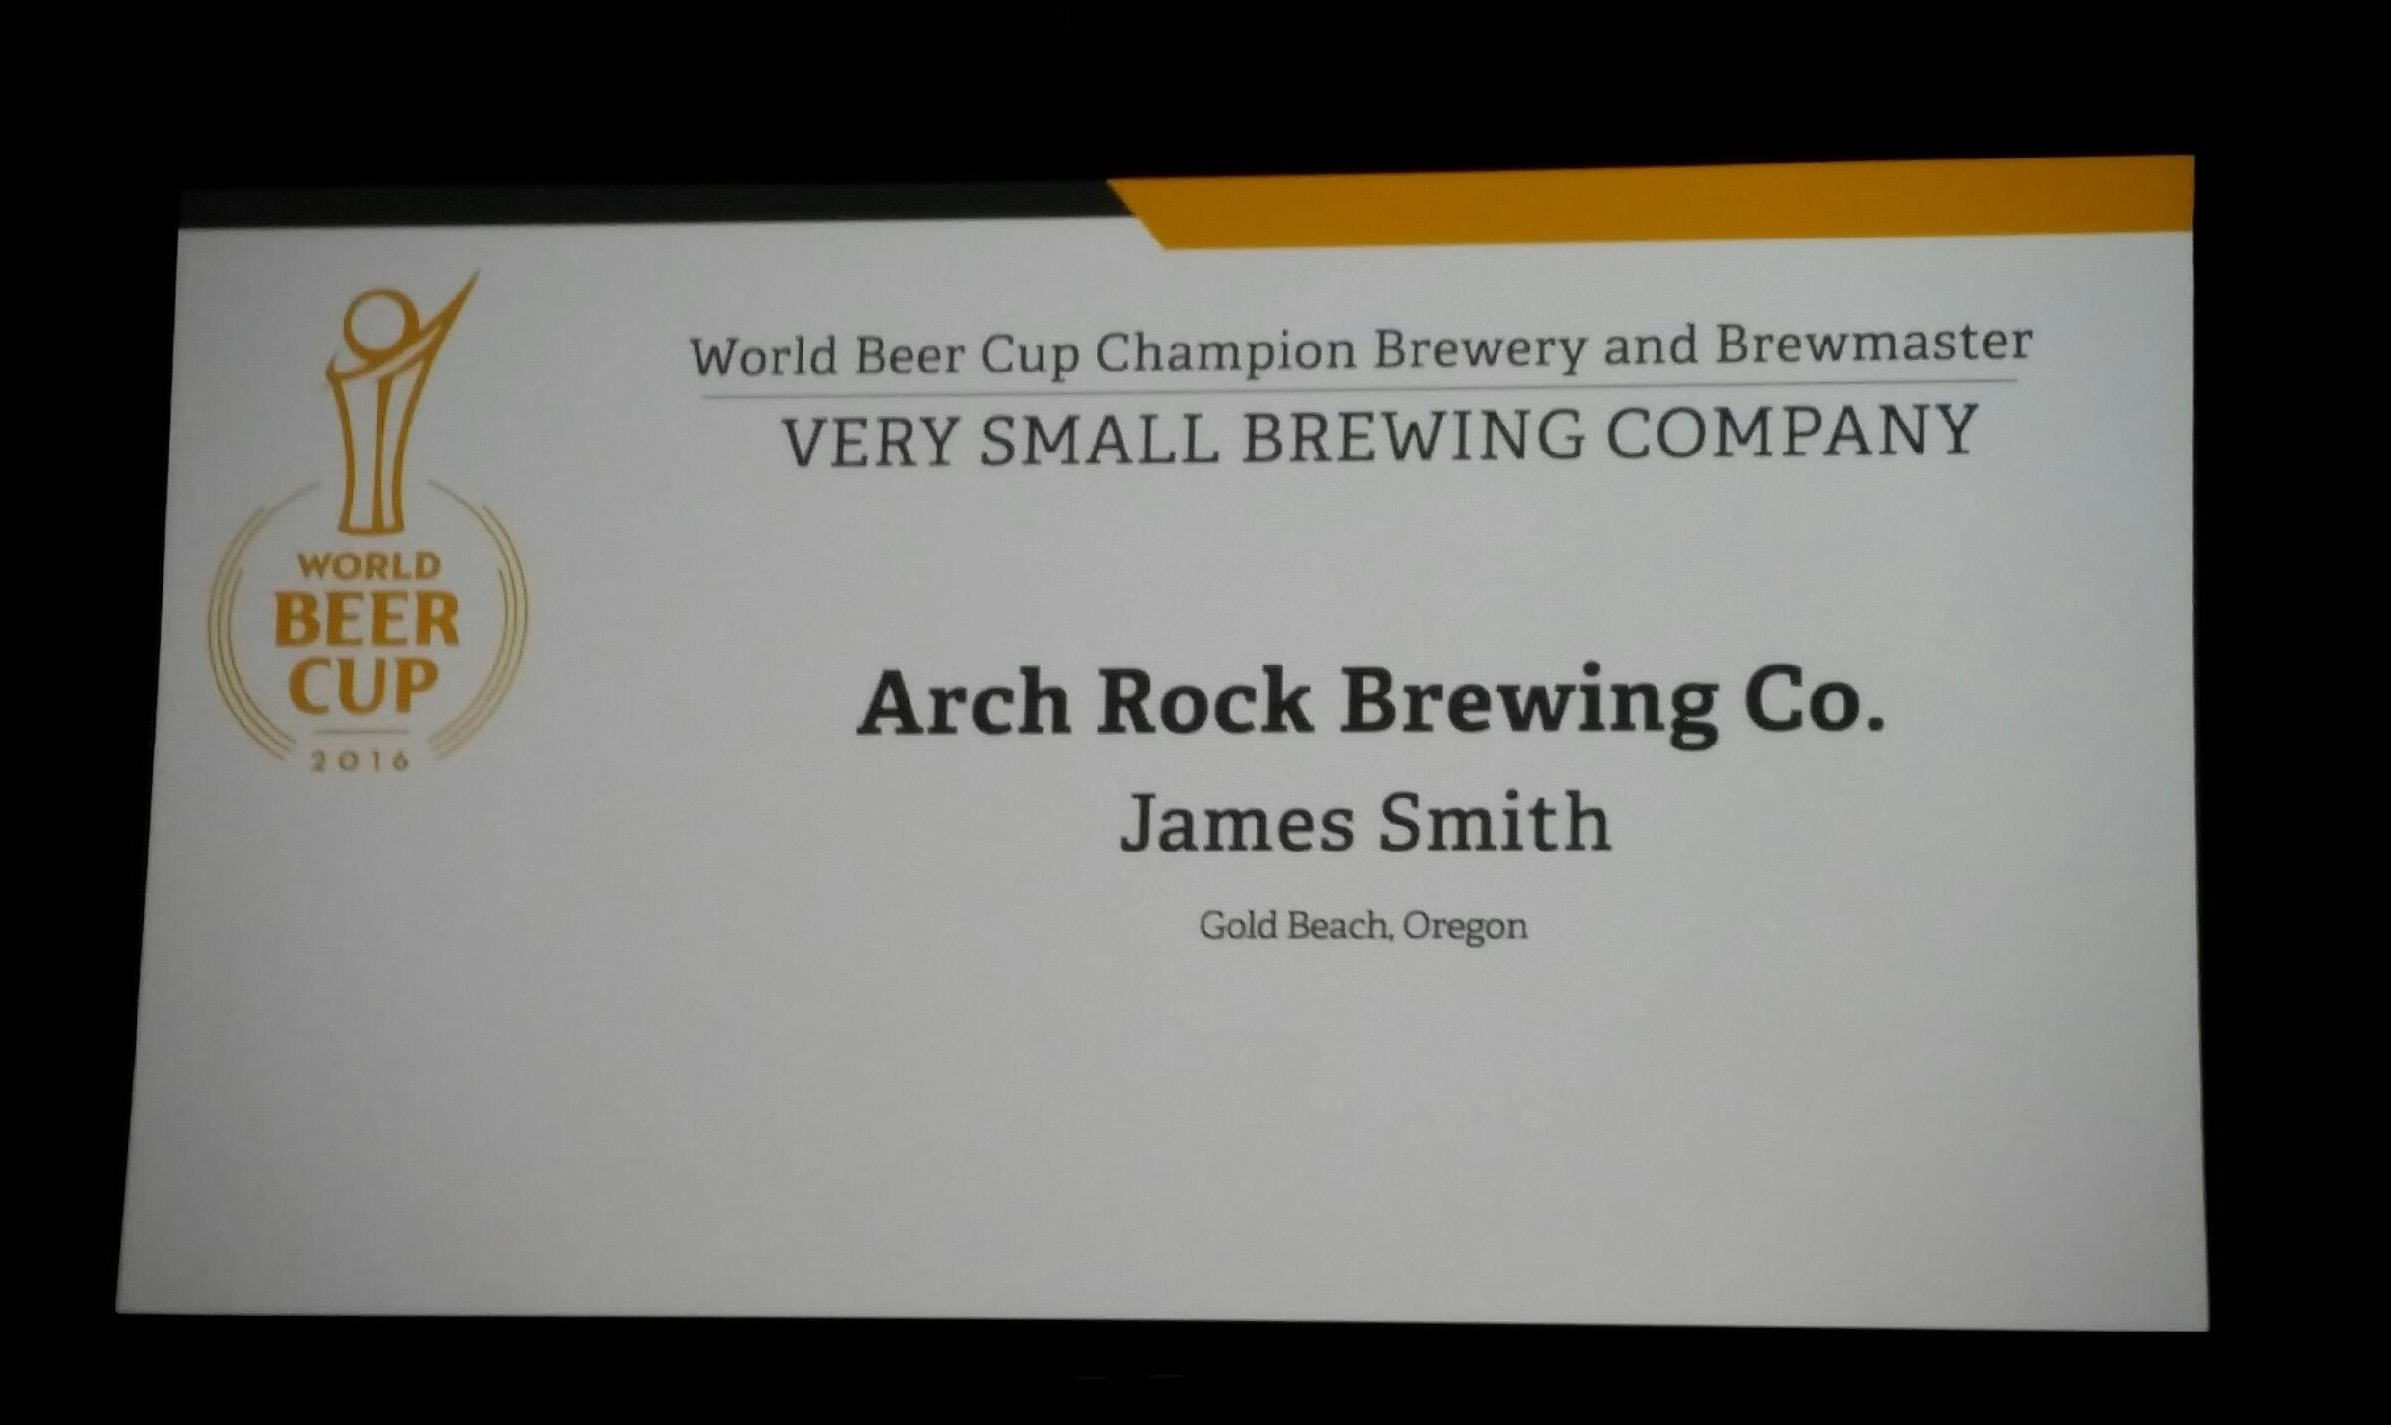 Arch Rock Brewing Co. wins Very Small Brewing Company at 2016 World Beer Cup.